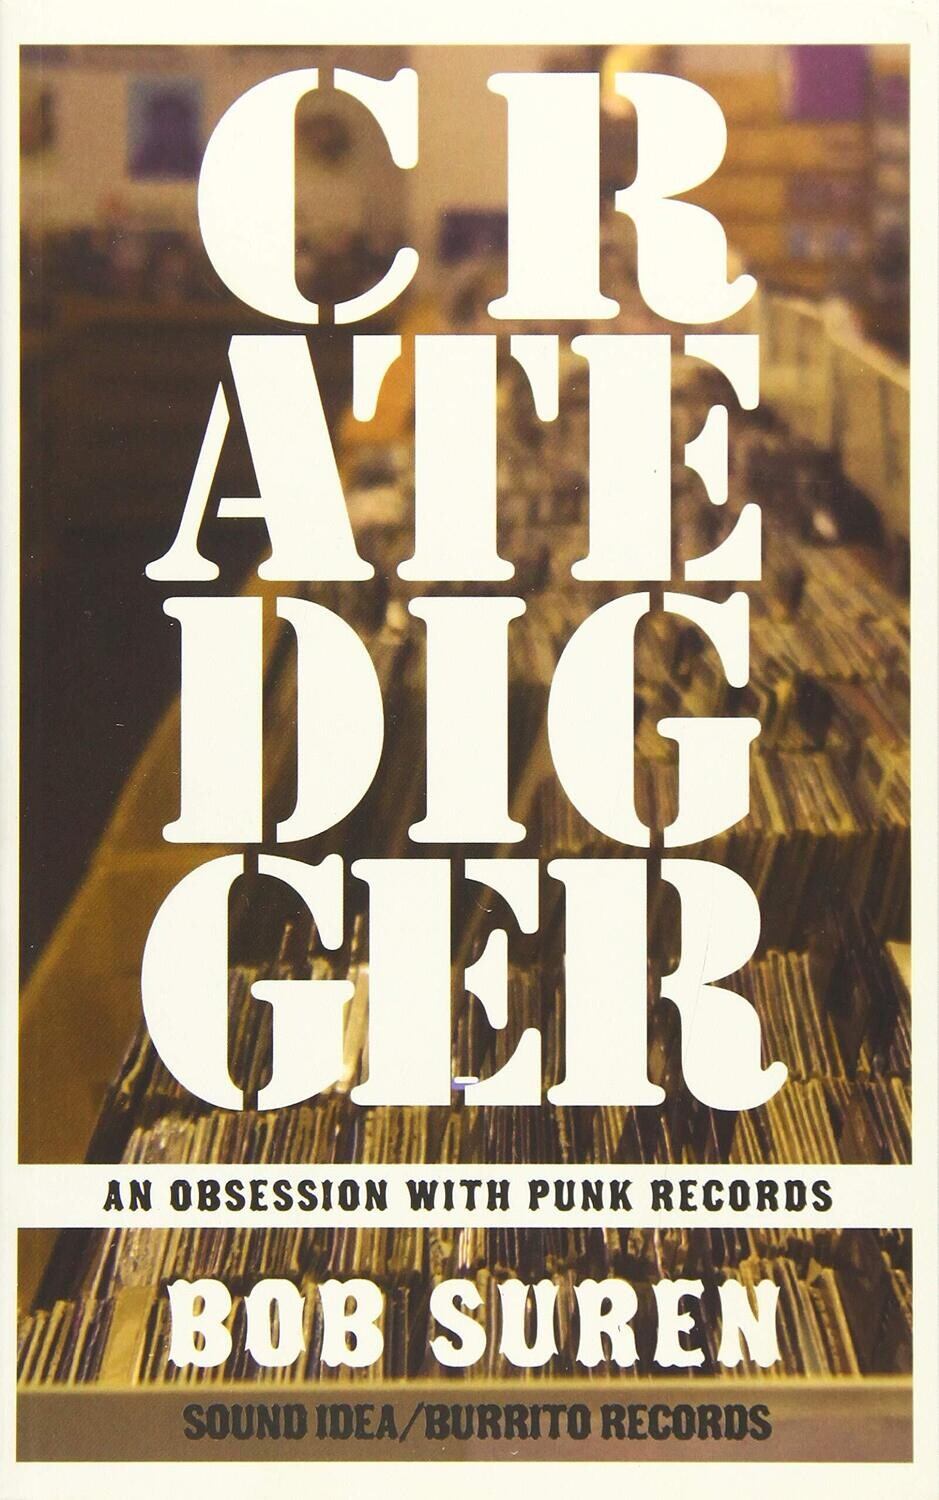 Crate Digger An Obsession With Punk Records